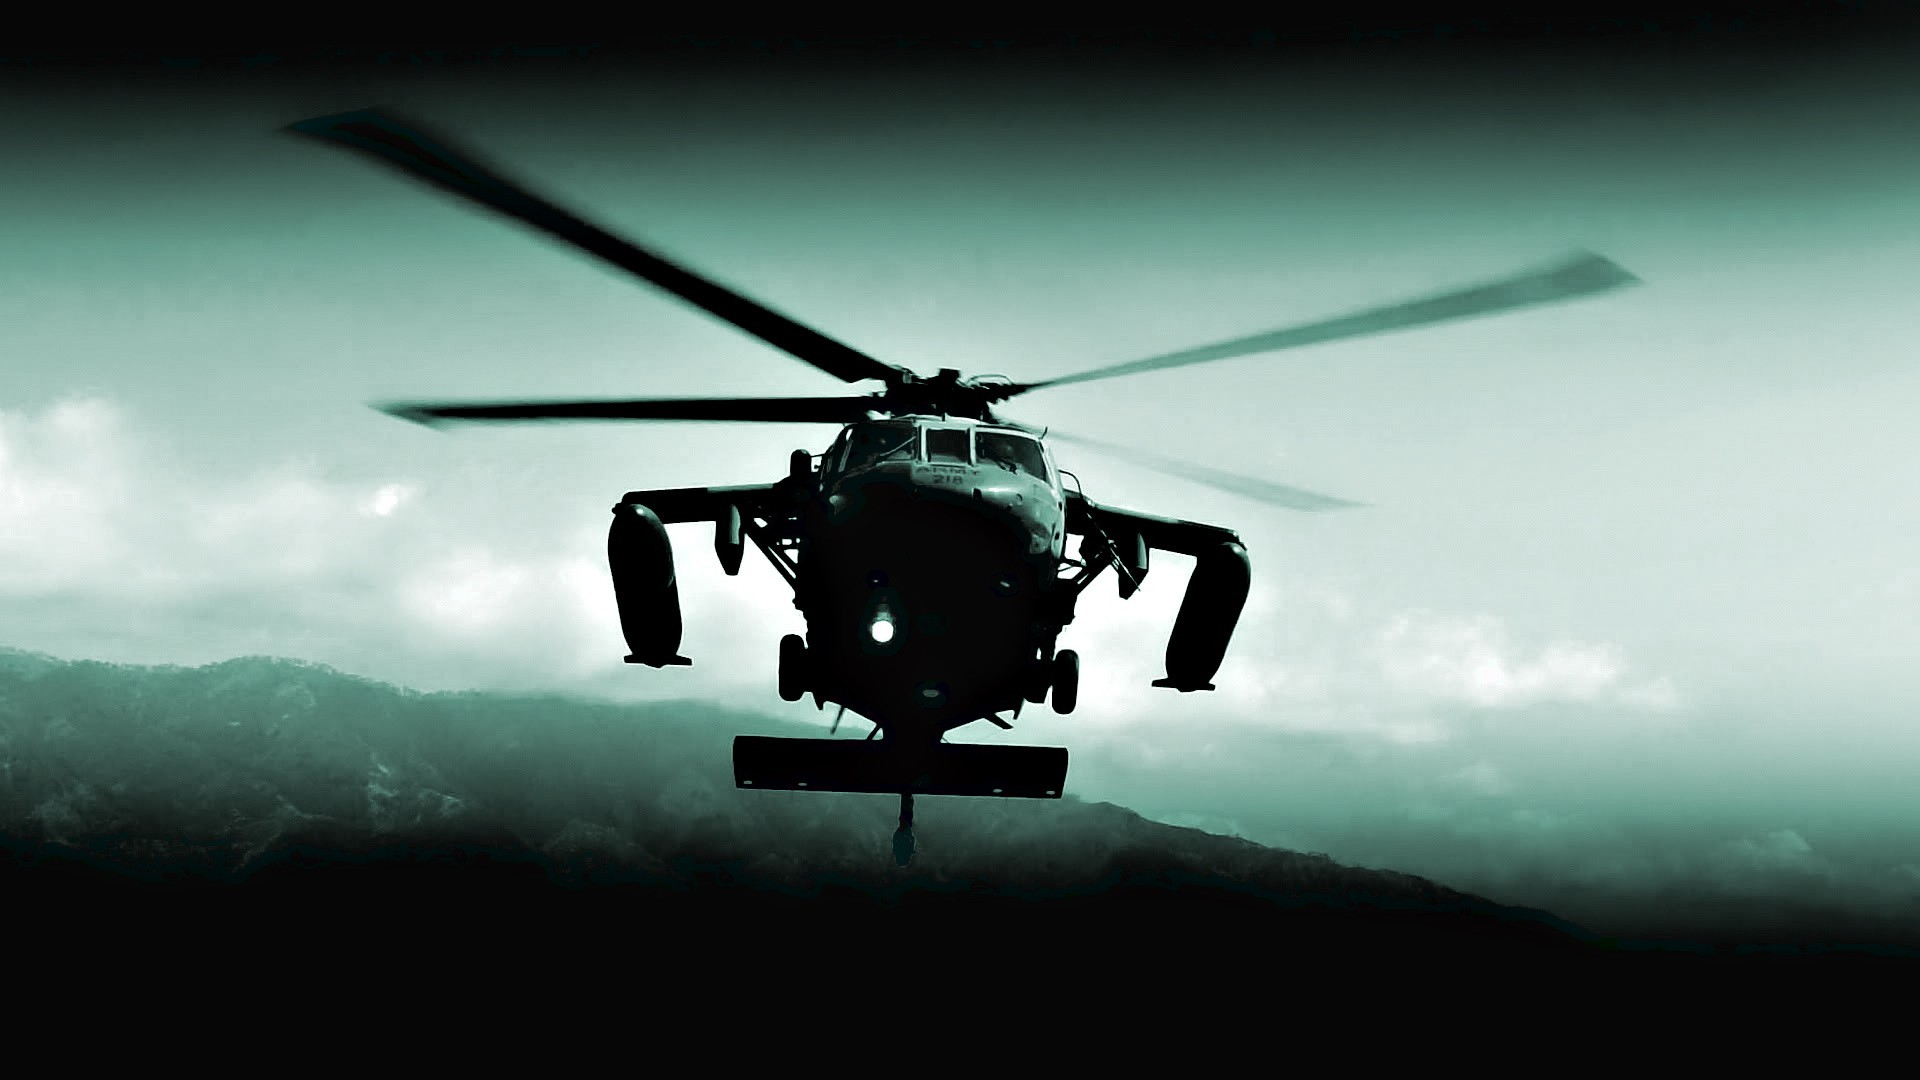 1920x1080 Army Military Wallpaper  Army Military Helicopters